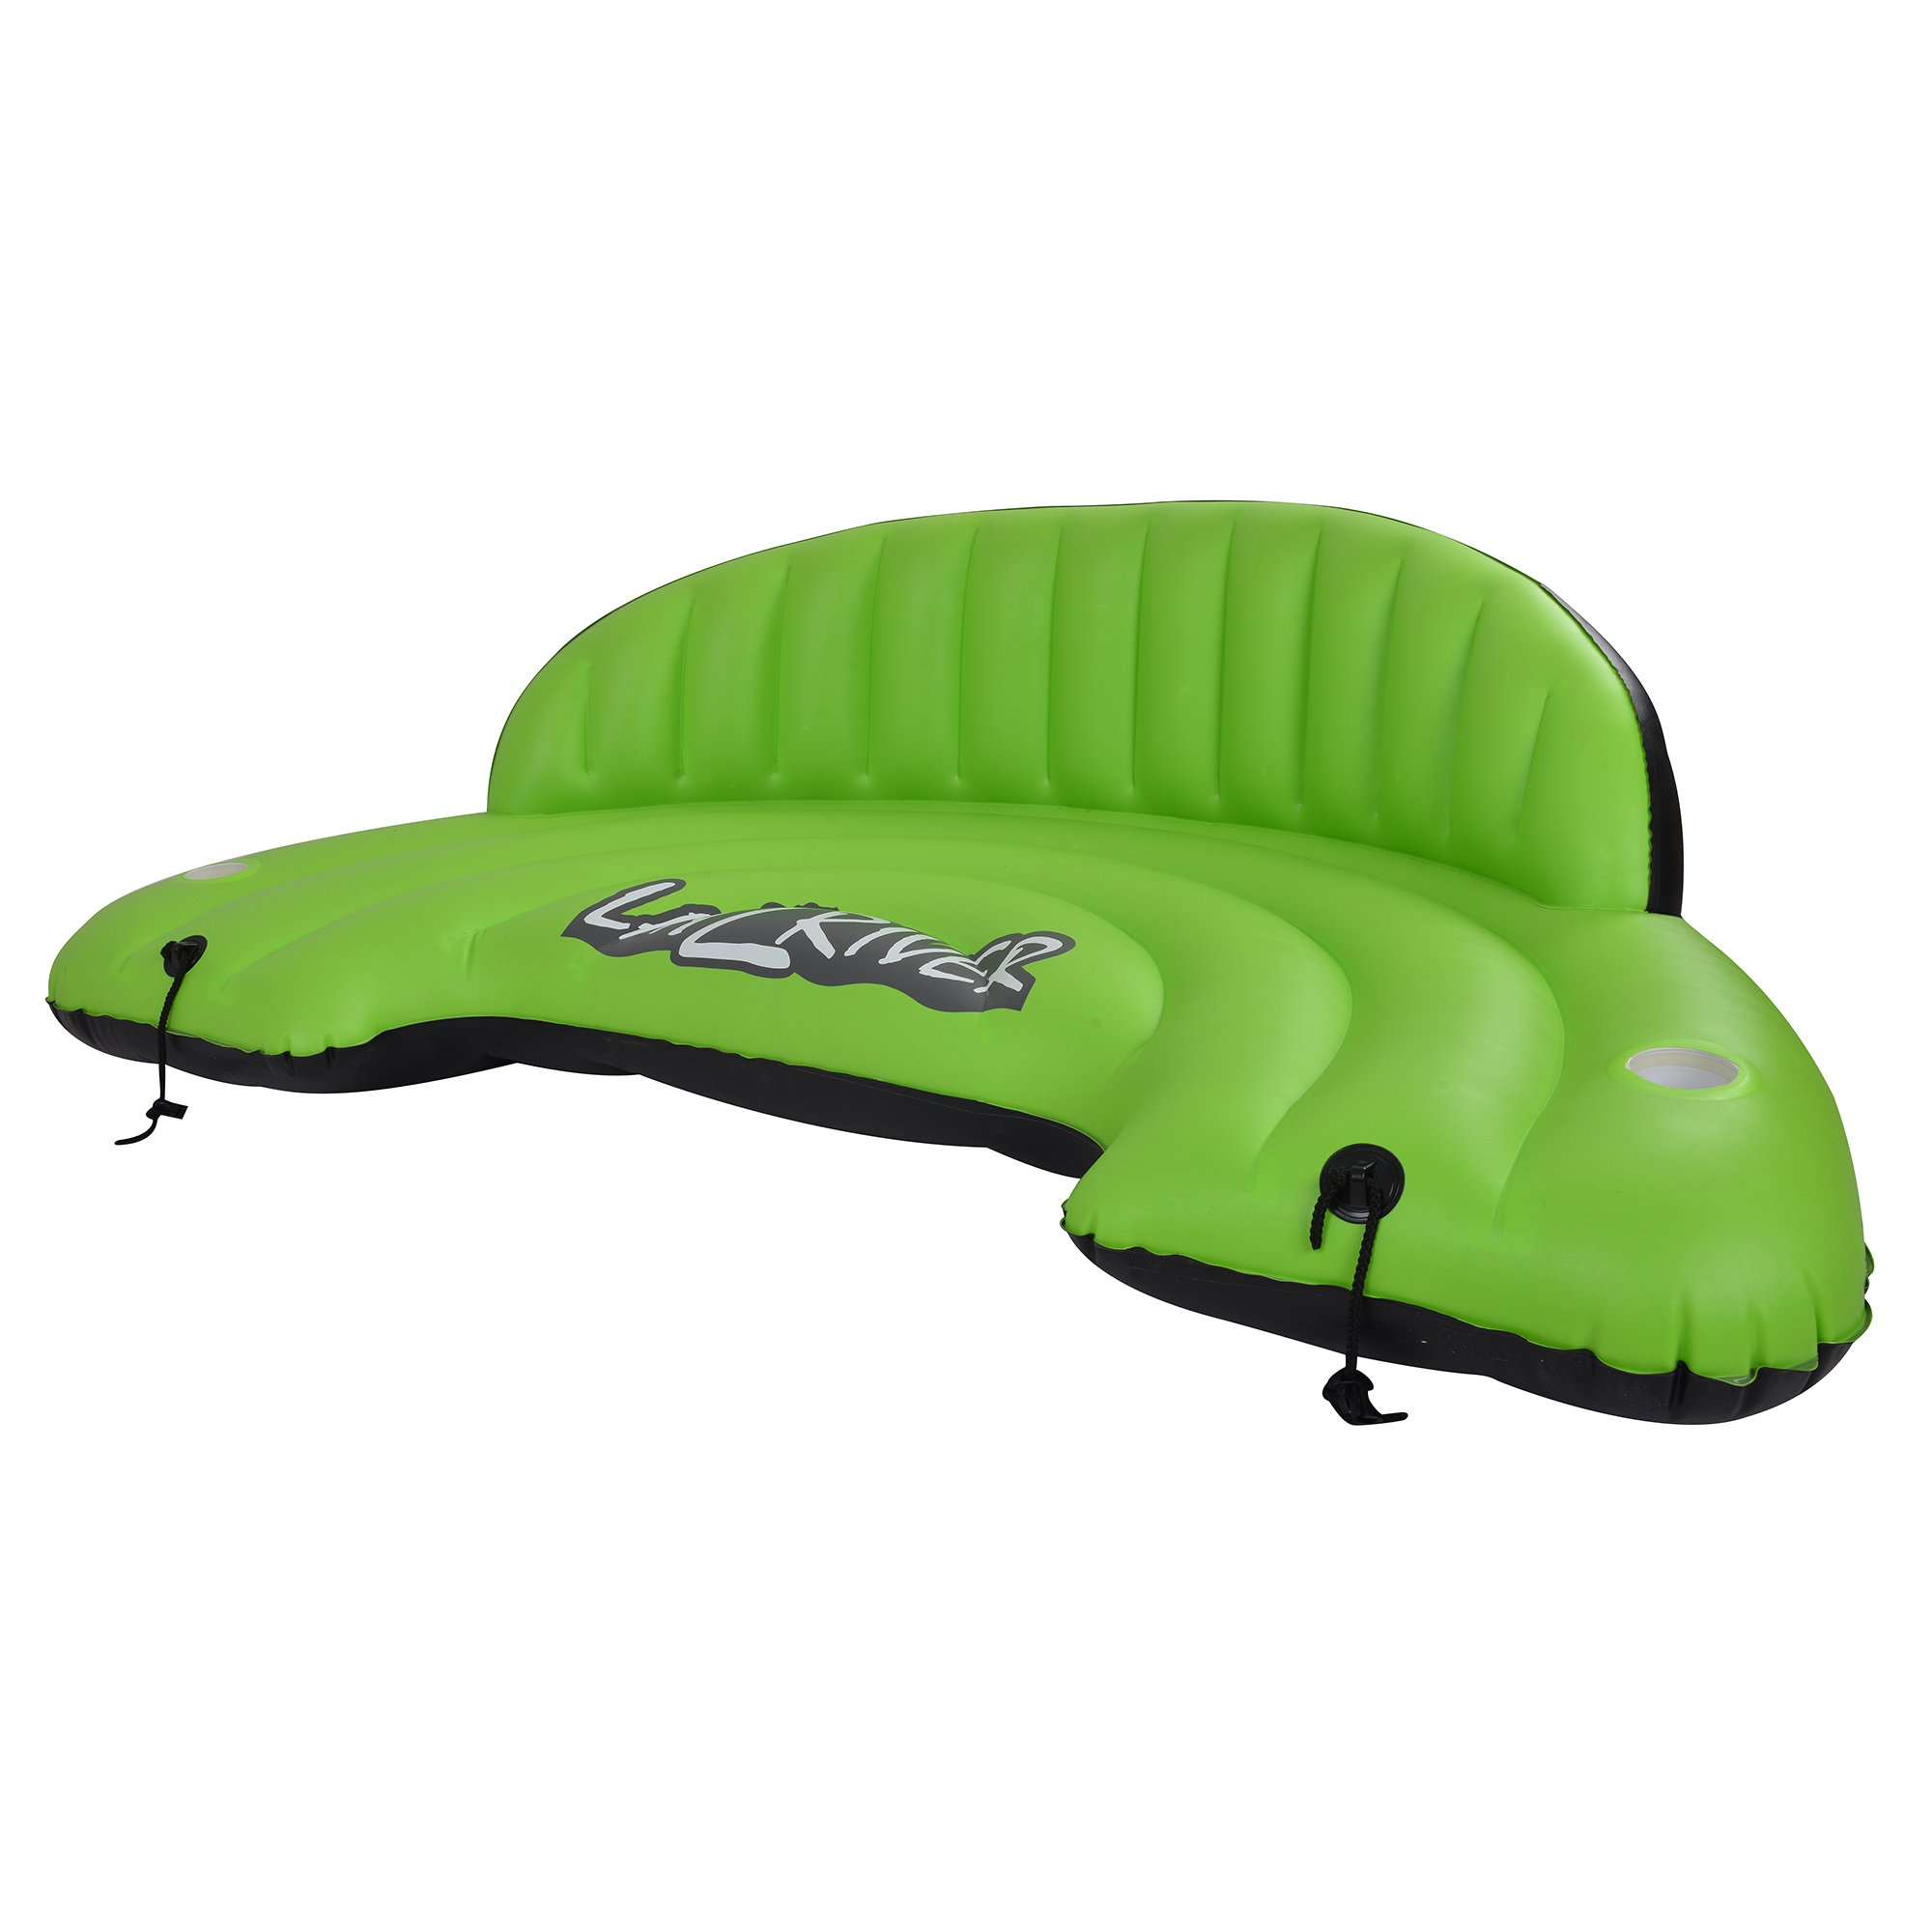 Blue Wave Sports Lay-Z-River Inflatable Sofa, Green/Black by Blue Wave Sports (Image #1)